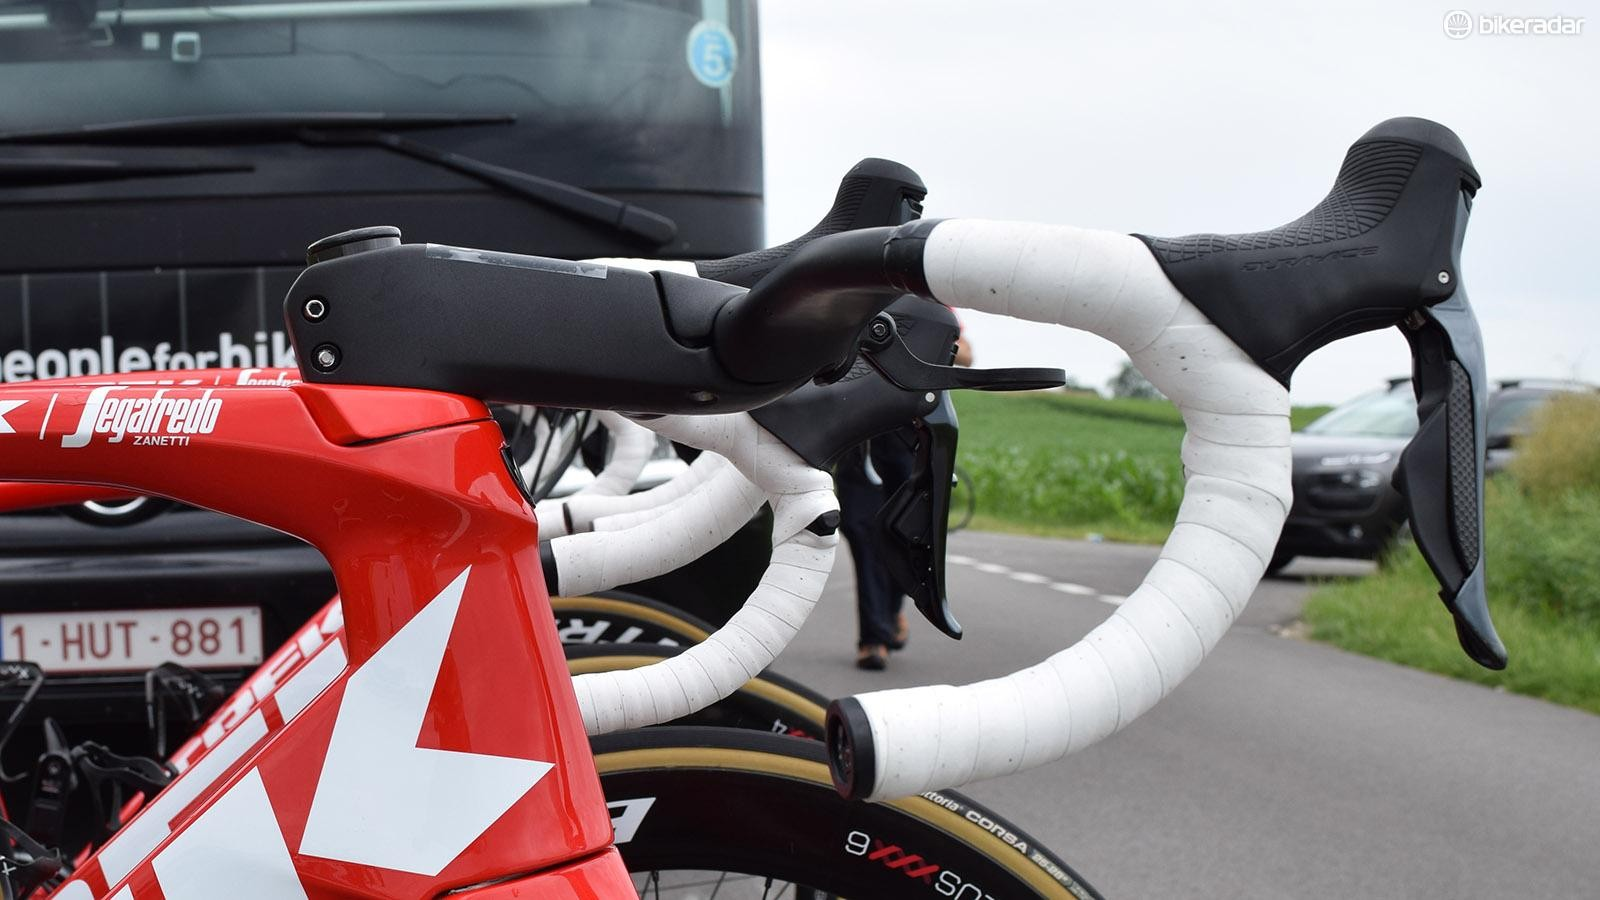 New integrated aero cockpits from Deda, Specialized, Trek and Ridley